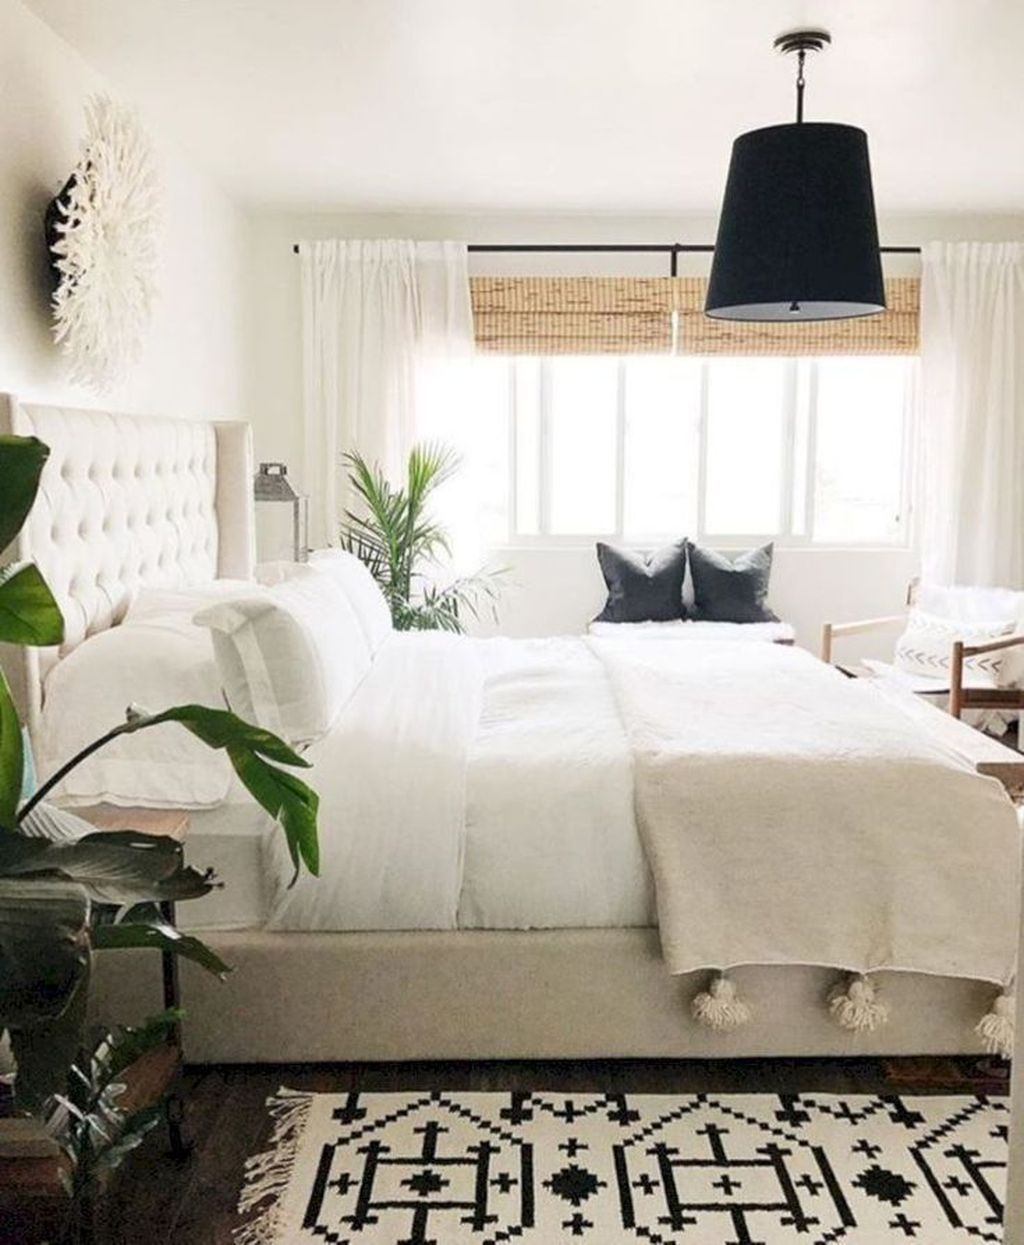 Trendy Bedroom Design Ideas That Look Awesome 10